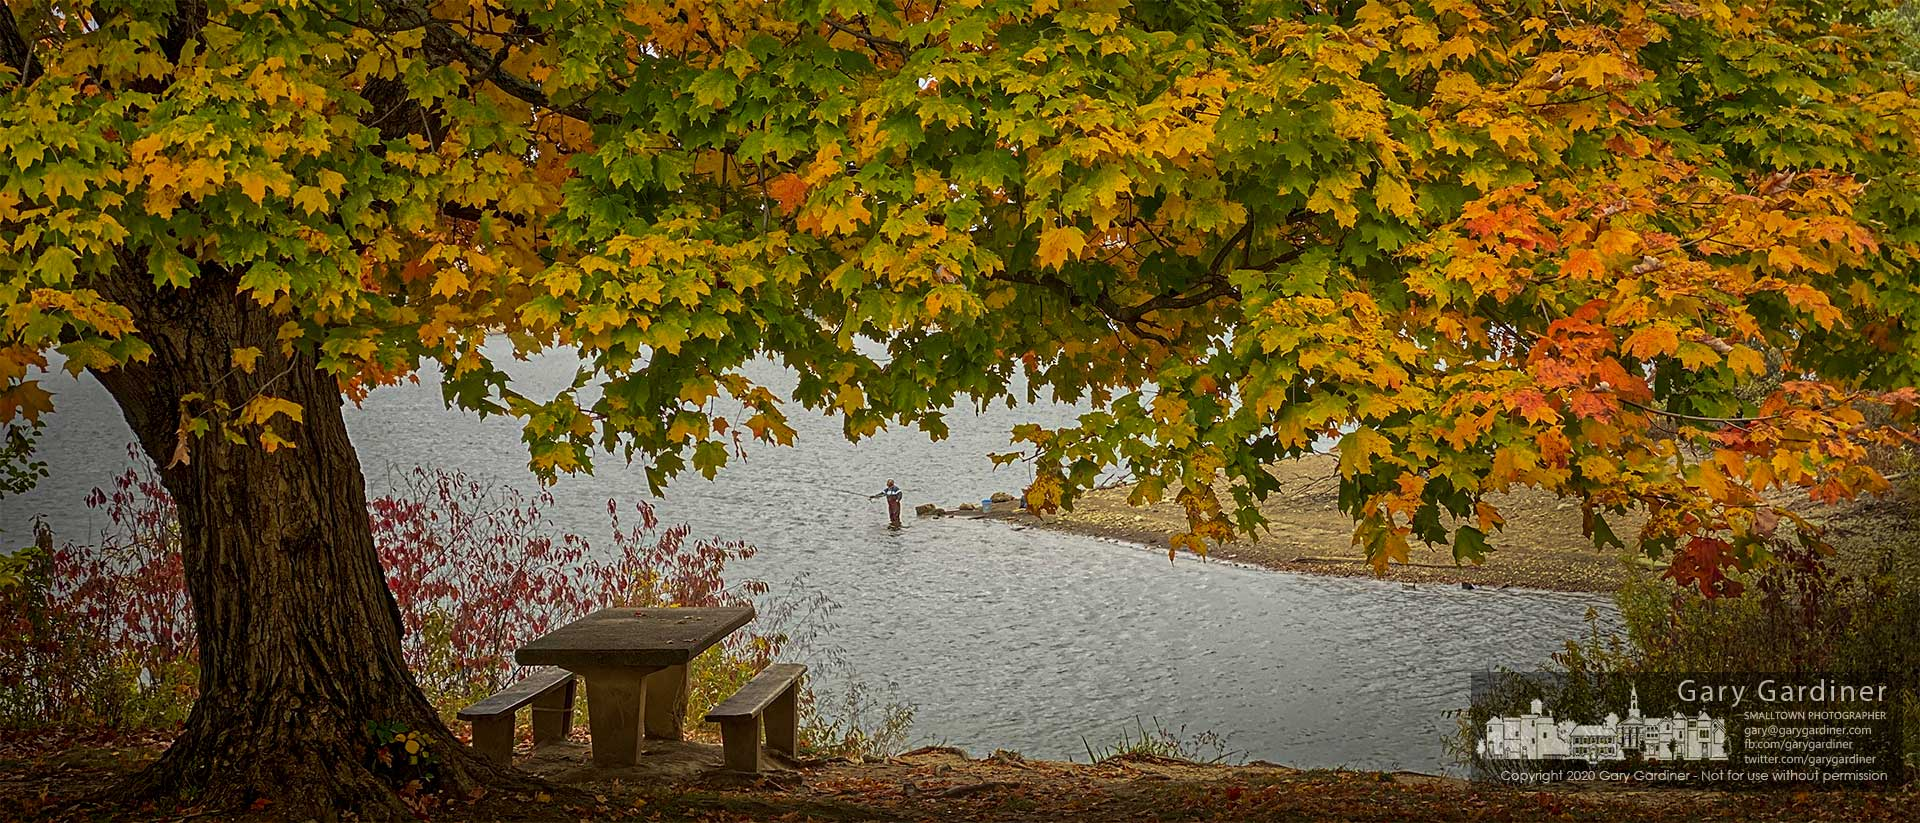 An angler casts his bait into the low waters of Hoover Reservoir under a nearby canopy of trees reflecting the colors of fall. My Final Photo for Oct. 11, 2020.